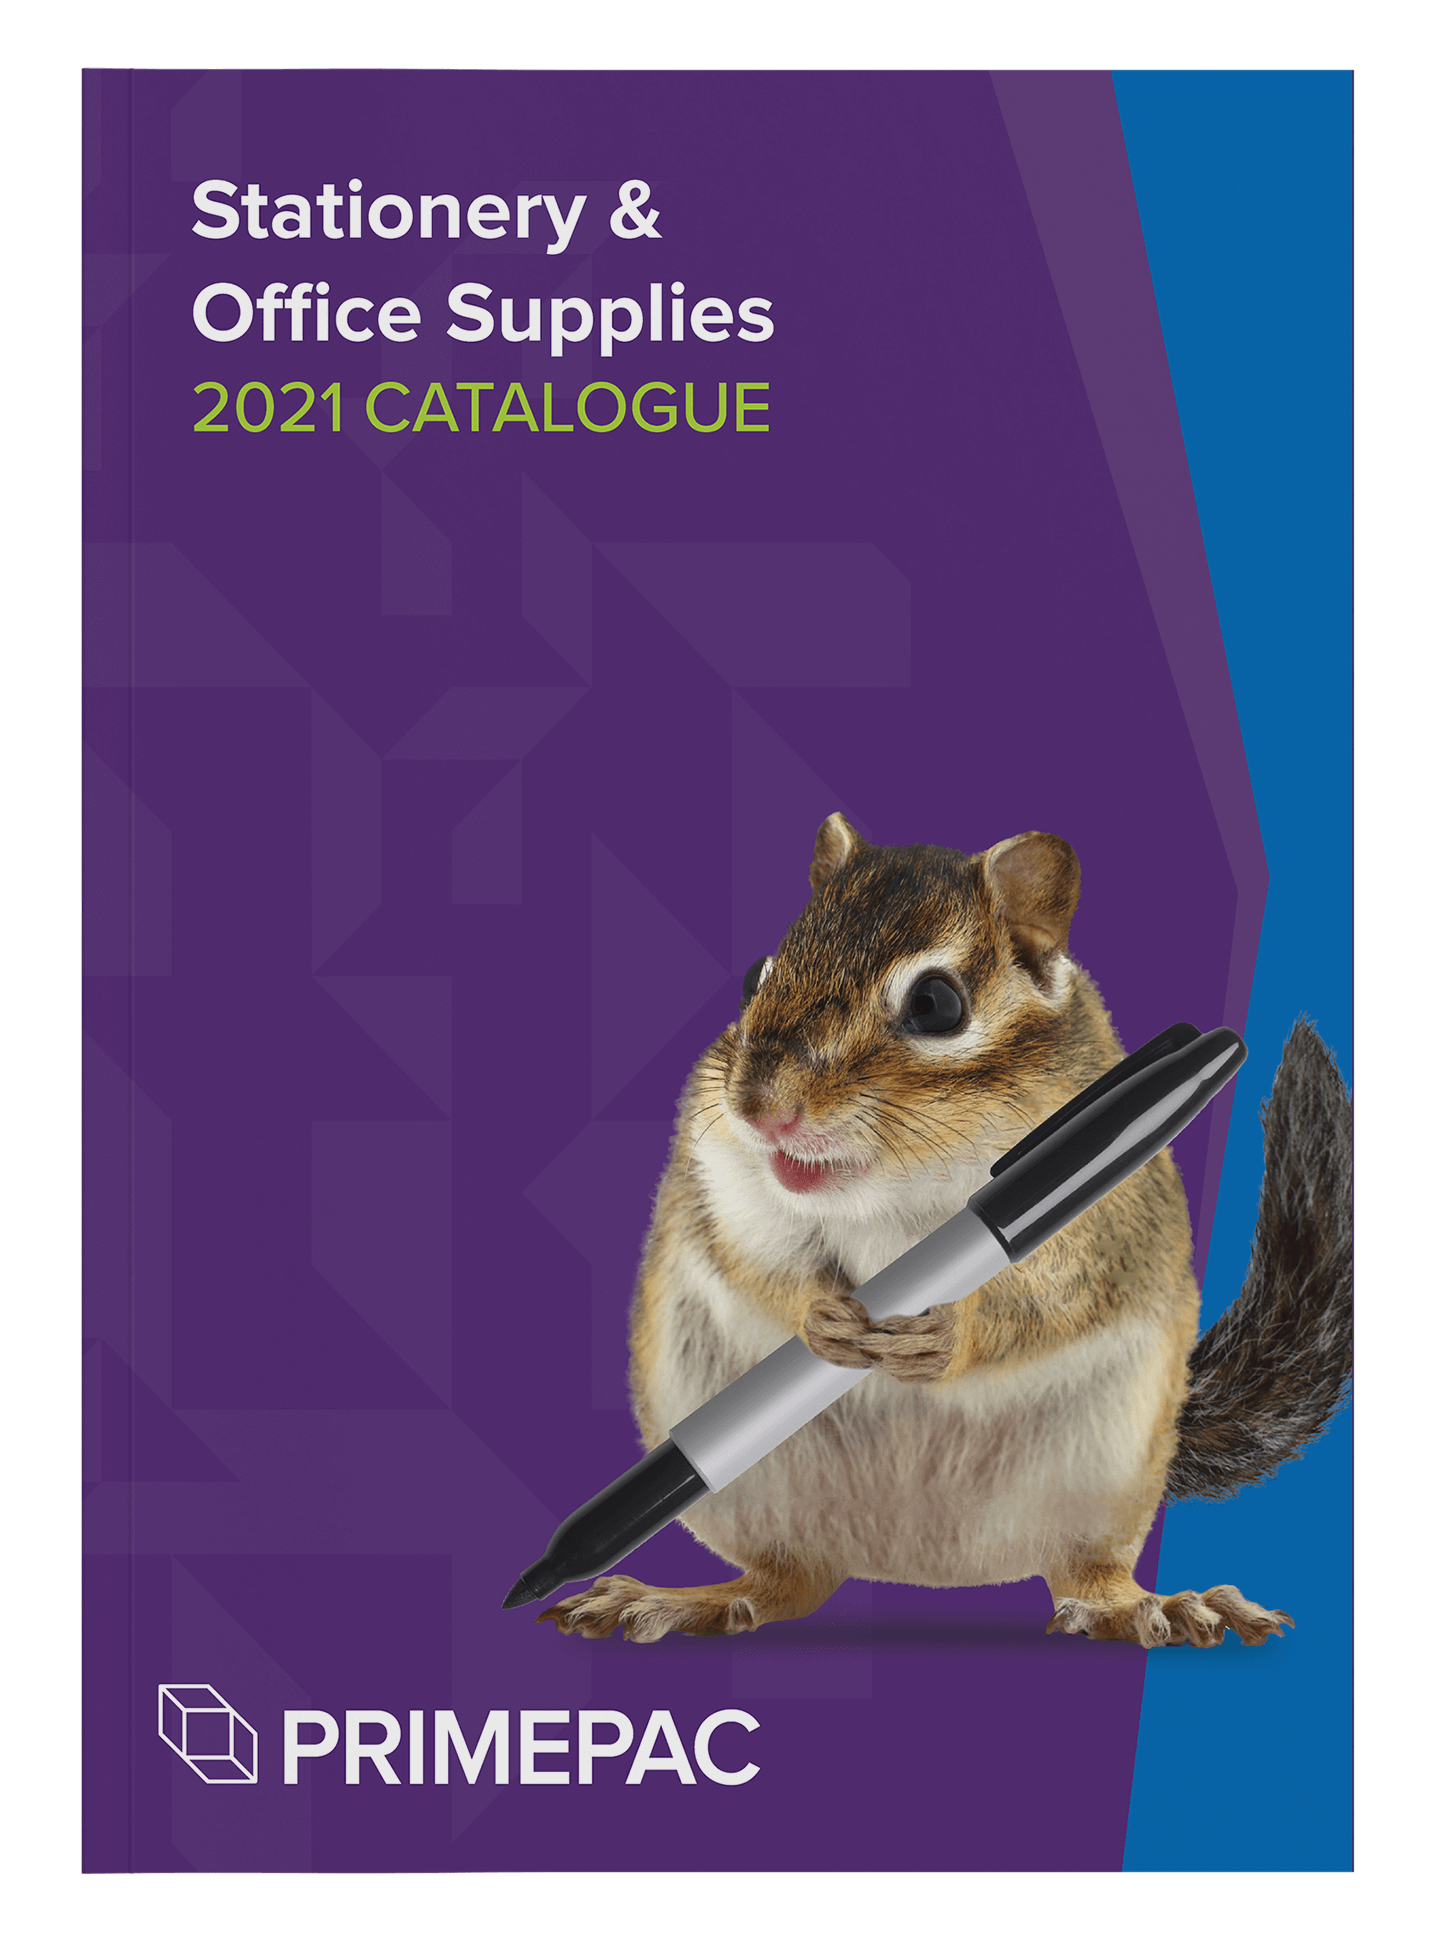 Stationery and office supplies catalogue